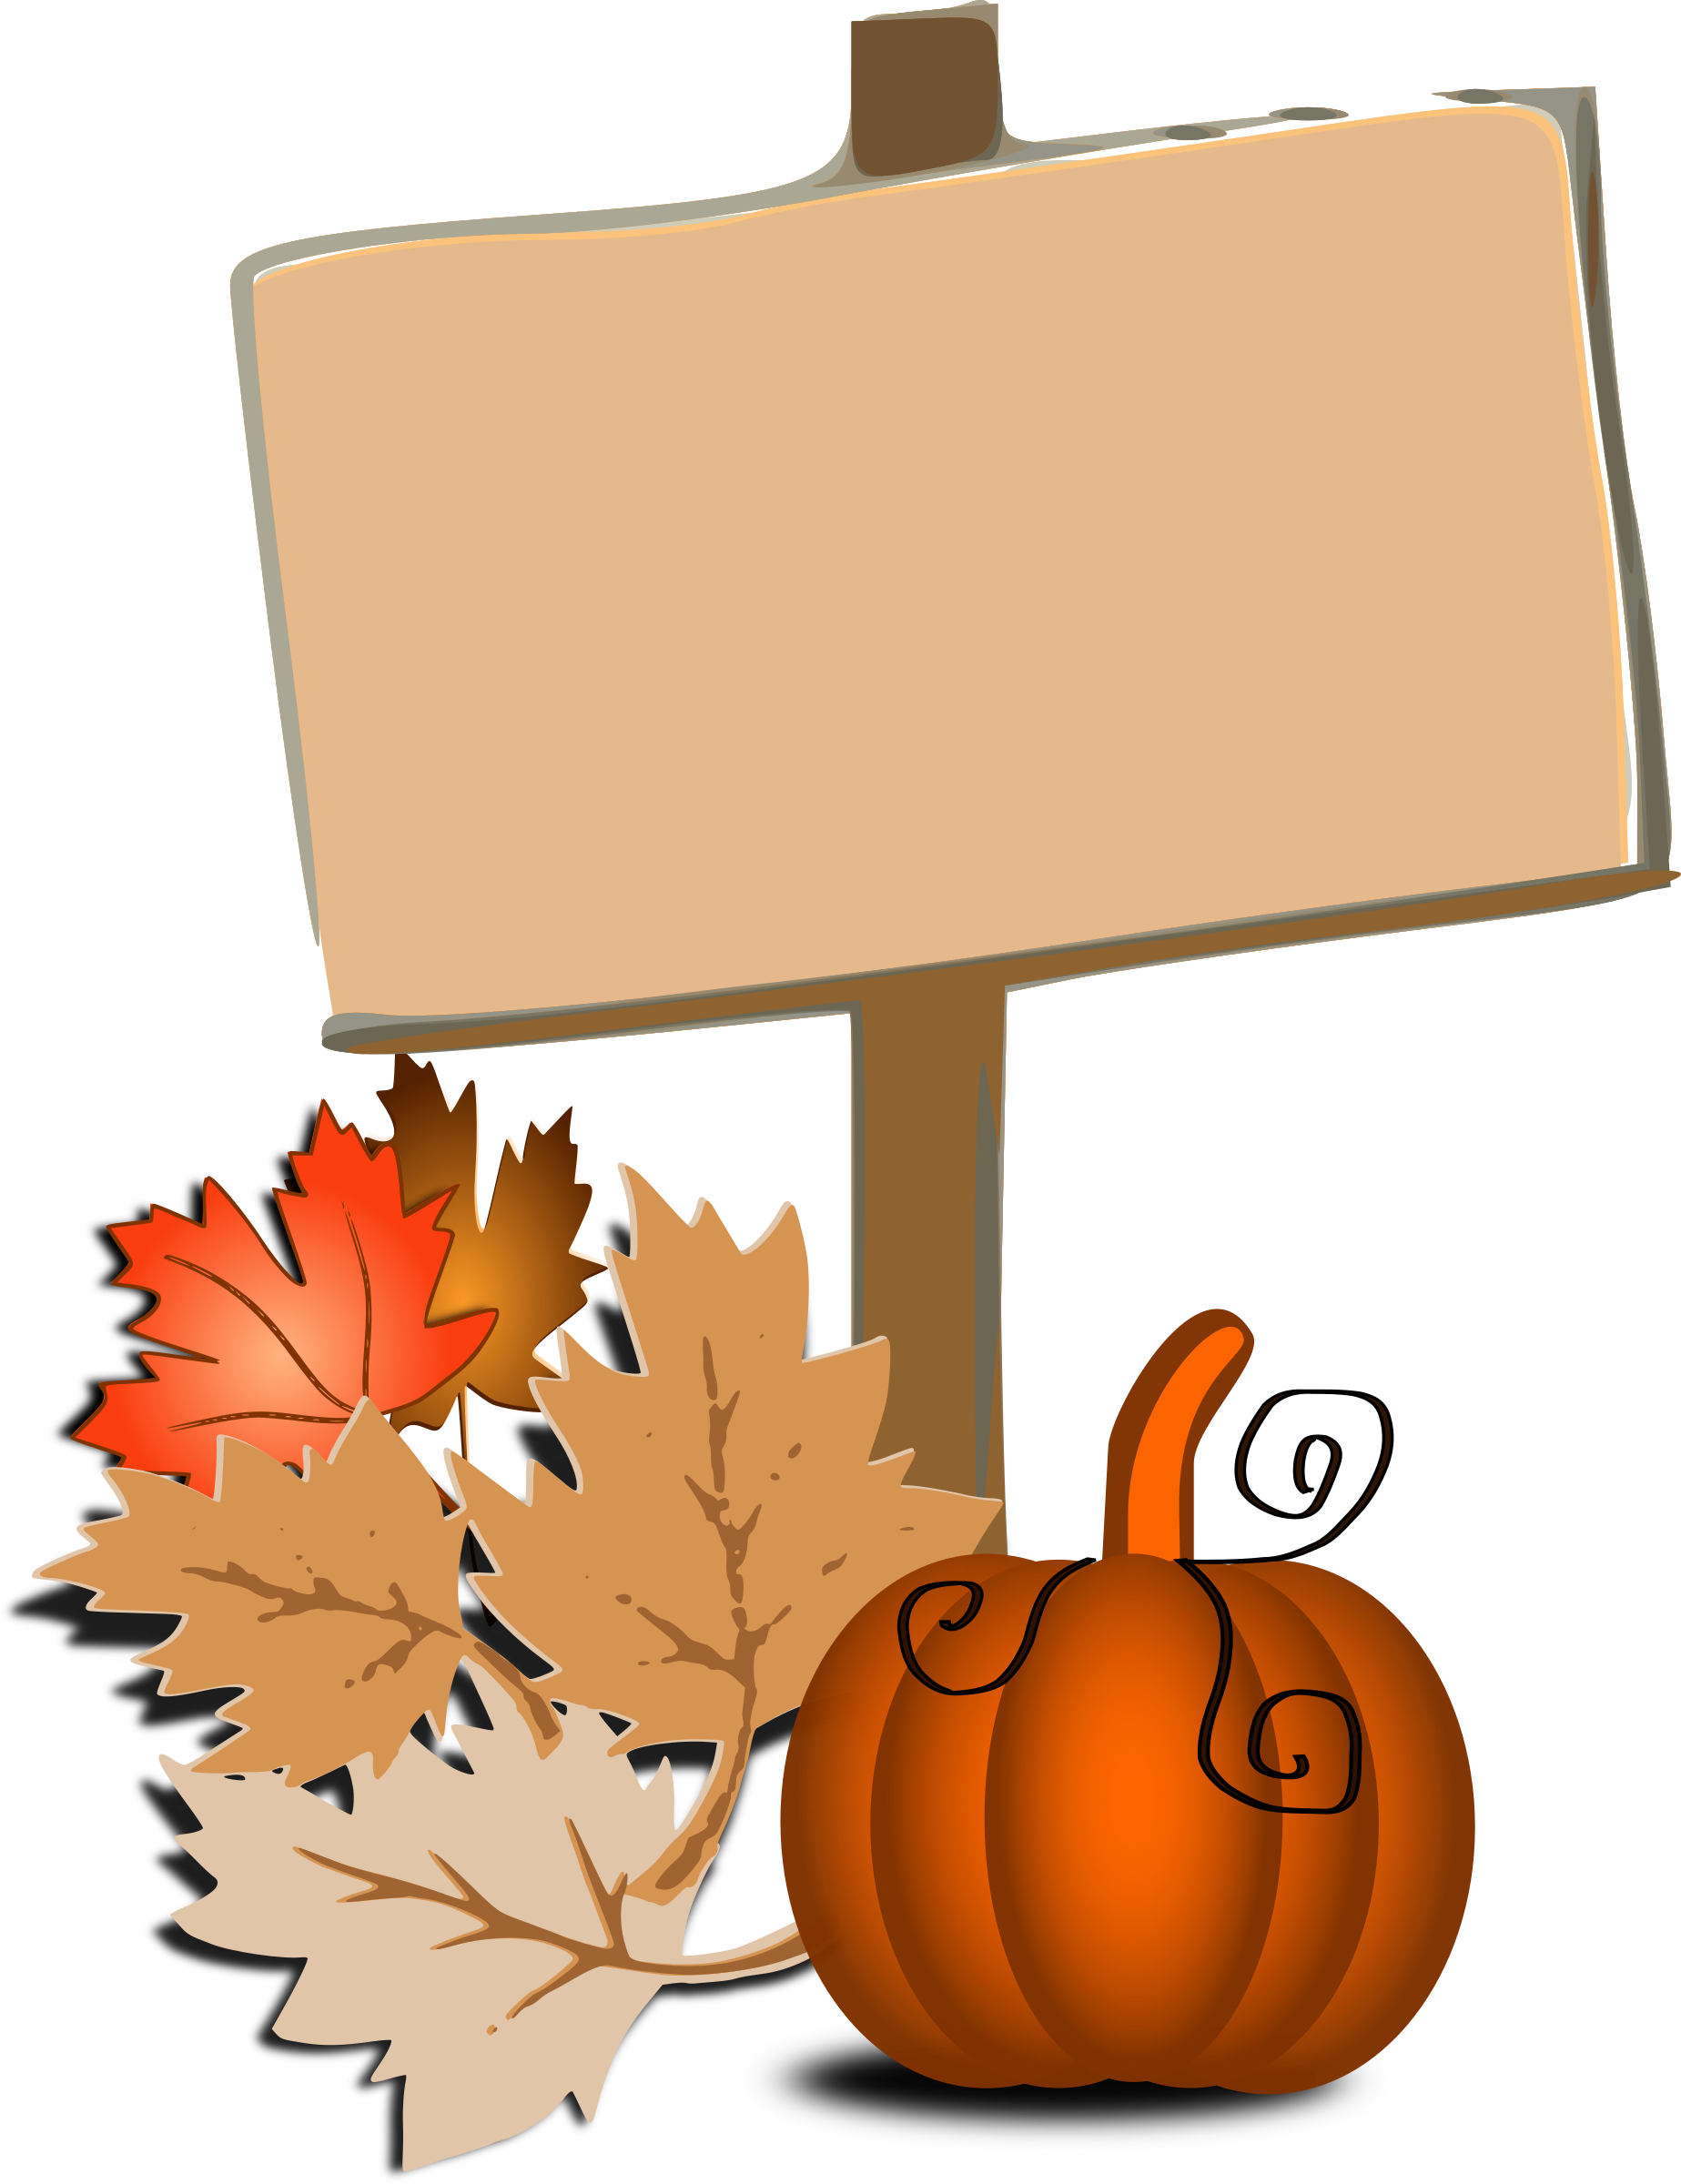 Pumpkin with leaves border clipart free jpg Clipart - Fall clip art jpg